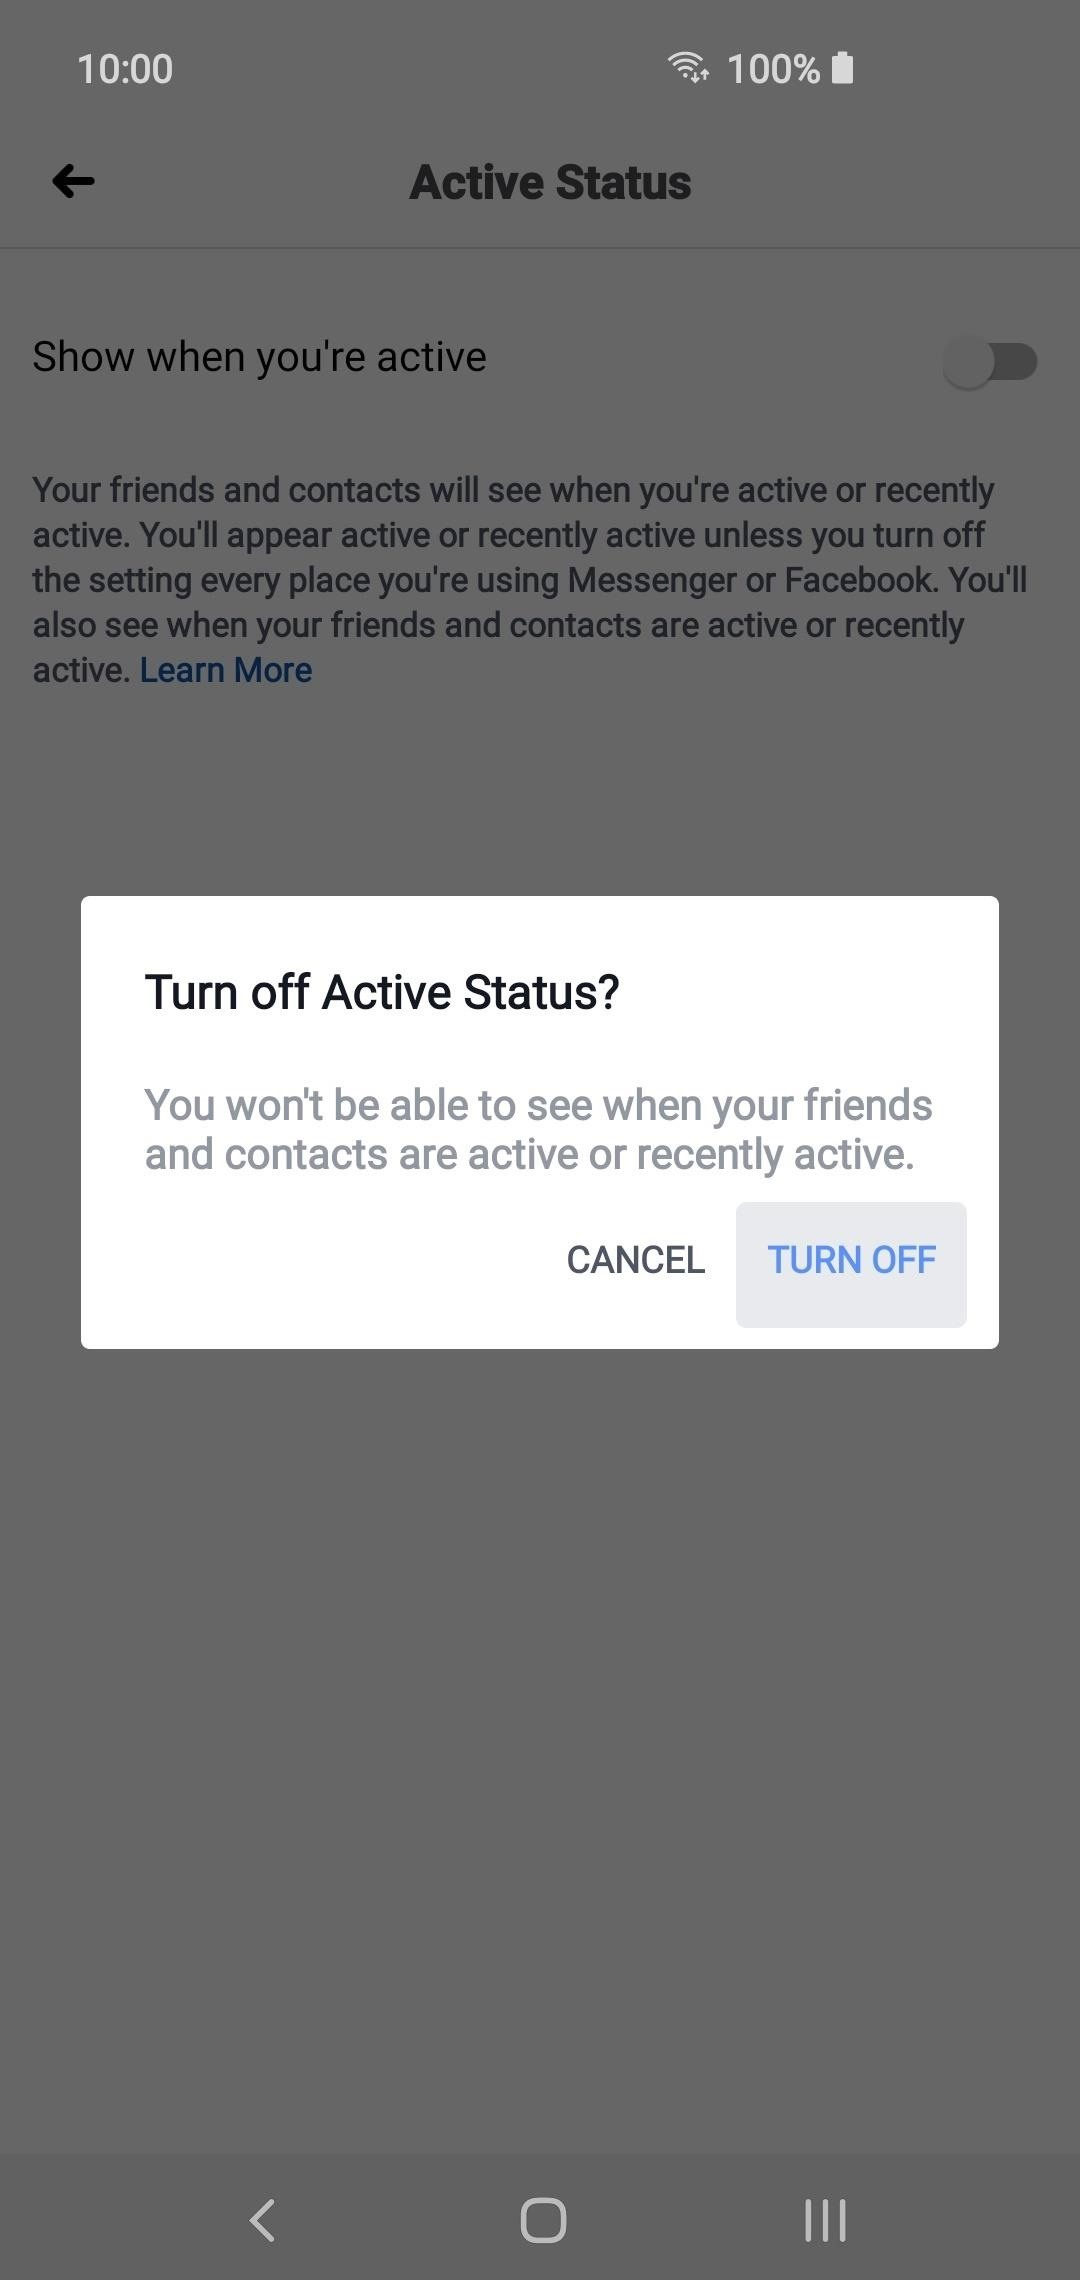 How to Completely Disable Your Active Status on Facebook & Messenger